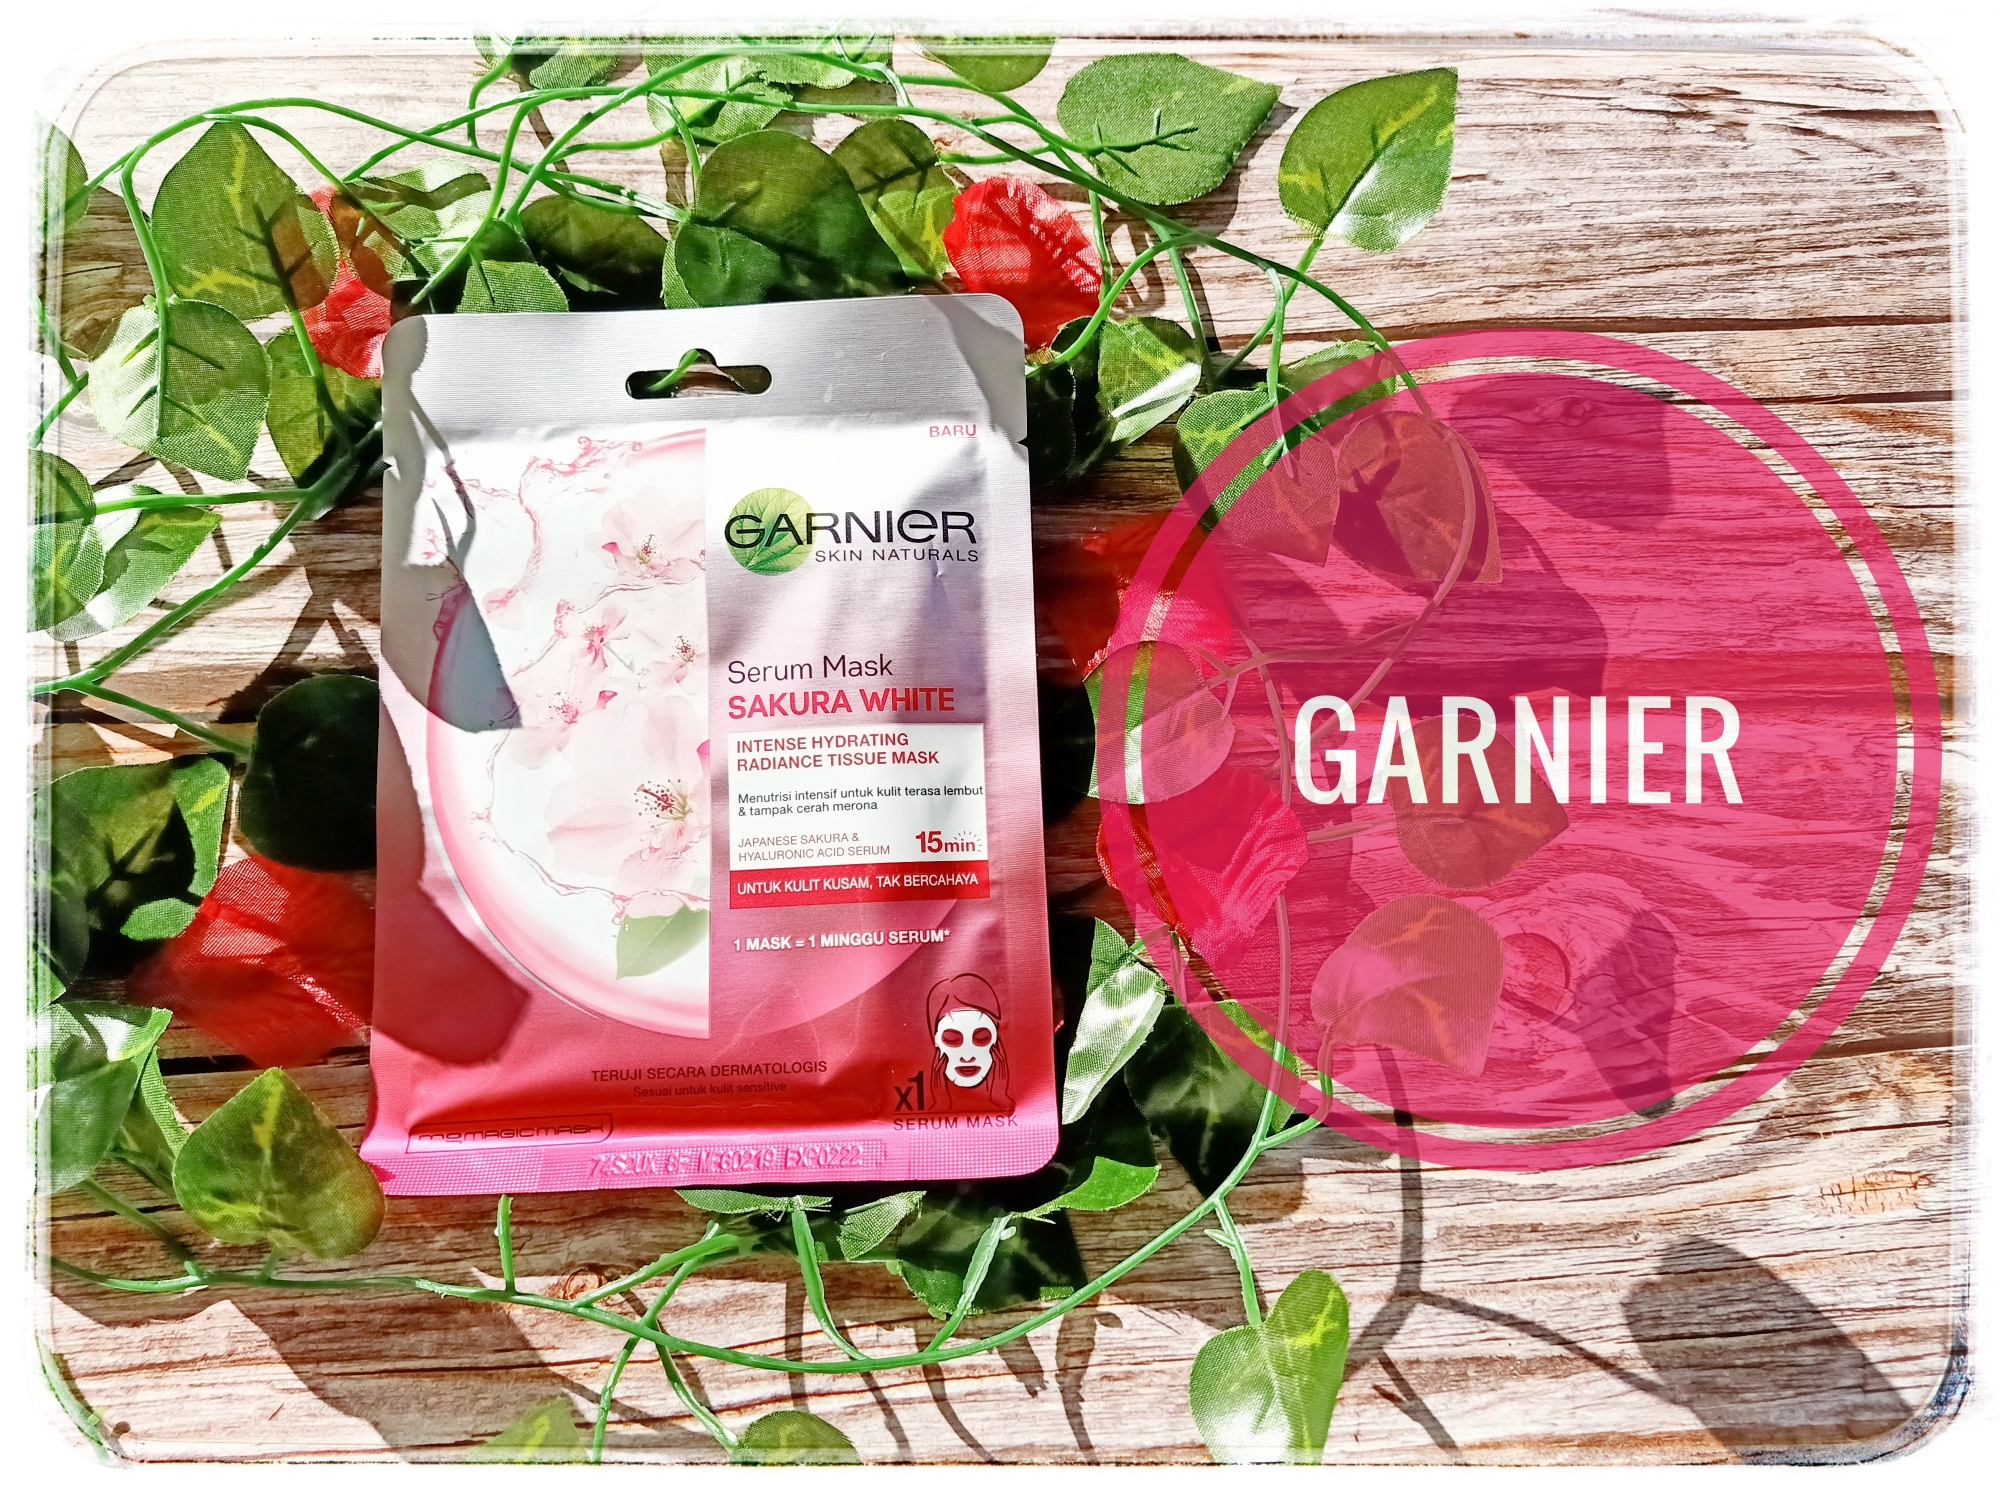 REVIEW | Garnier Skin Naturals Serum Mask Sakura White